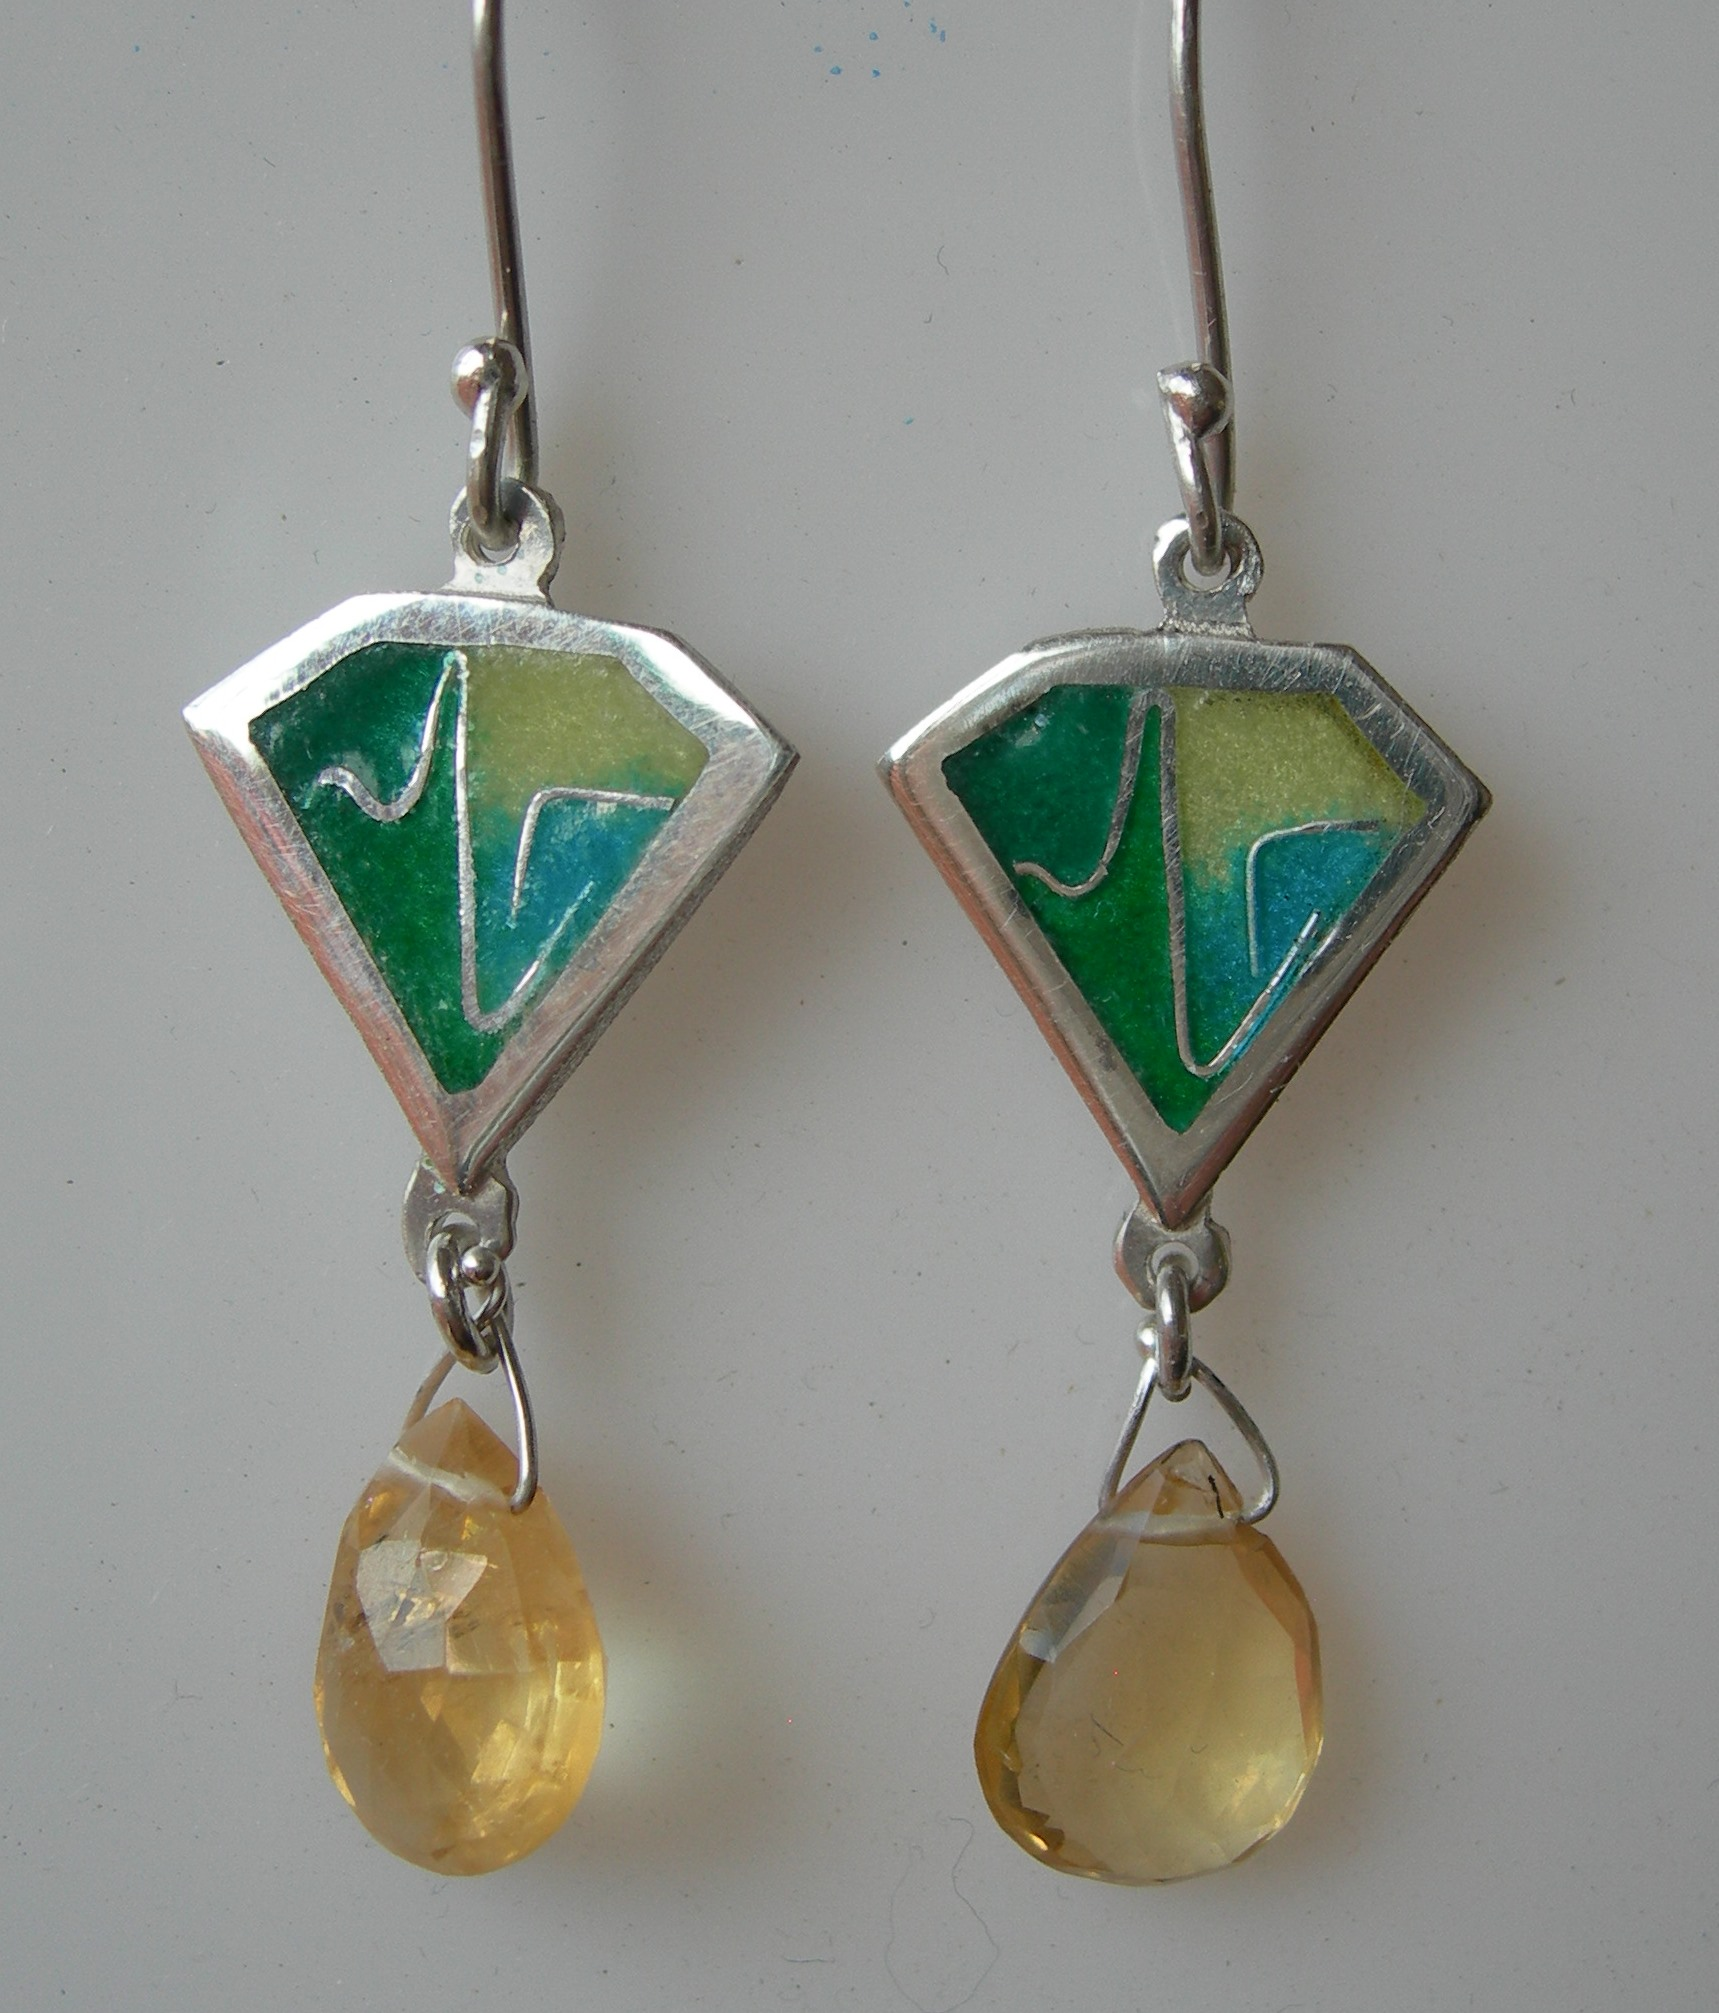 Green kite earrings in sterling silver